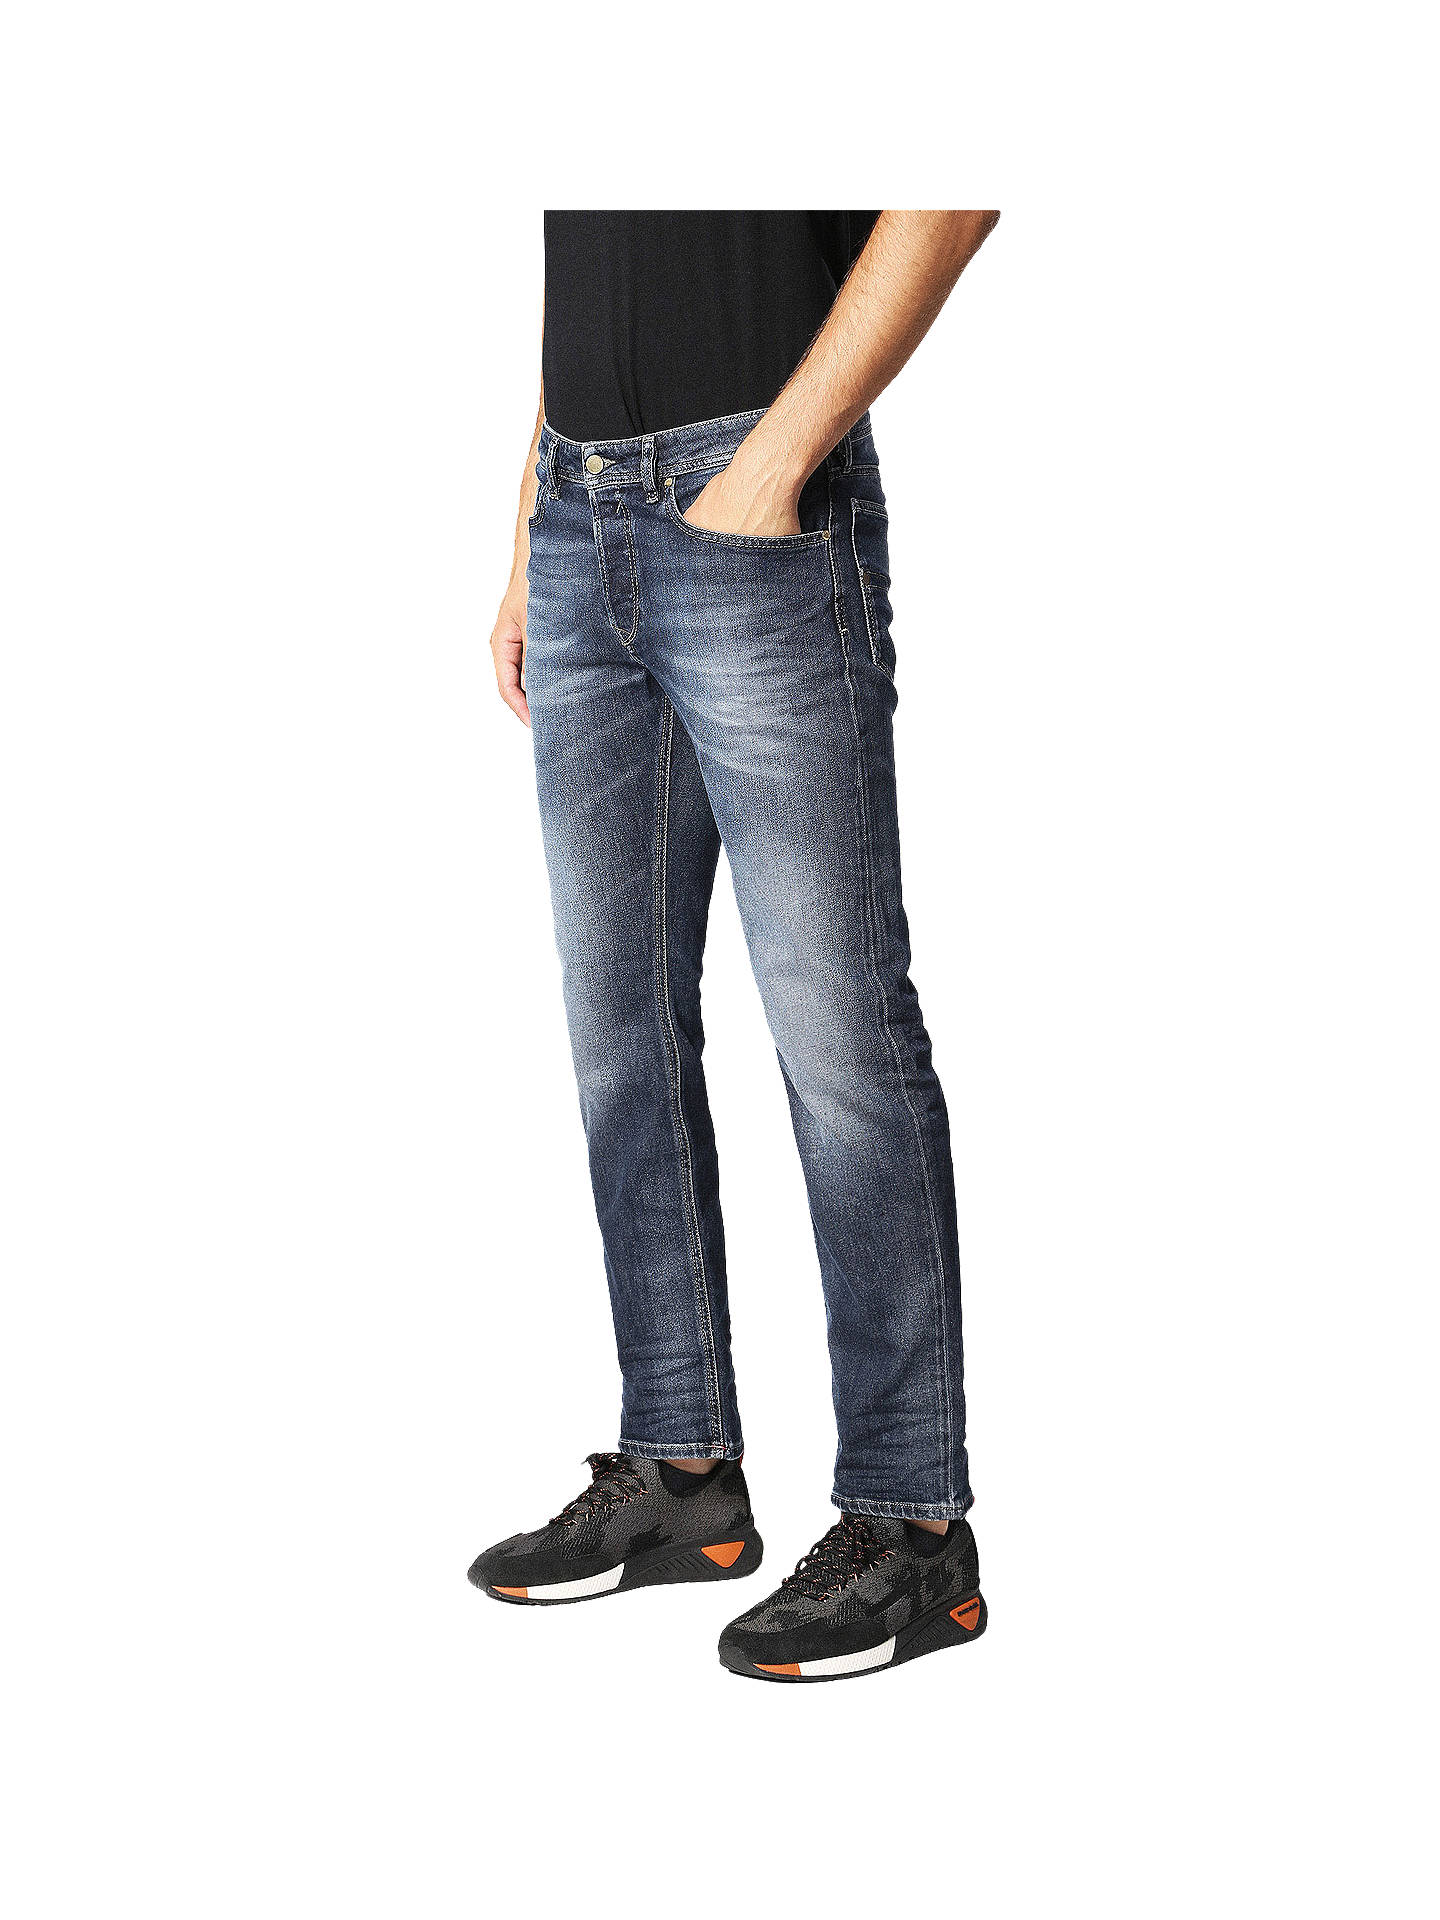 BuyDiesel Thommer Jeans, Washed Indigo, 30S Online at johnlewis.com